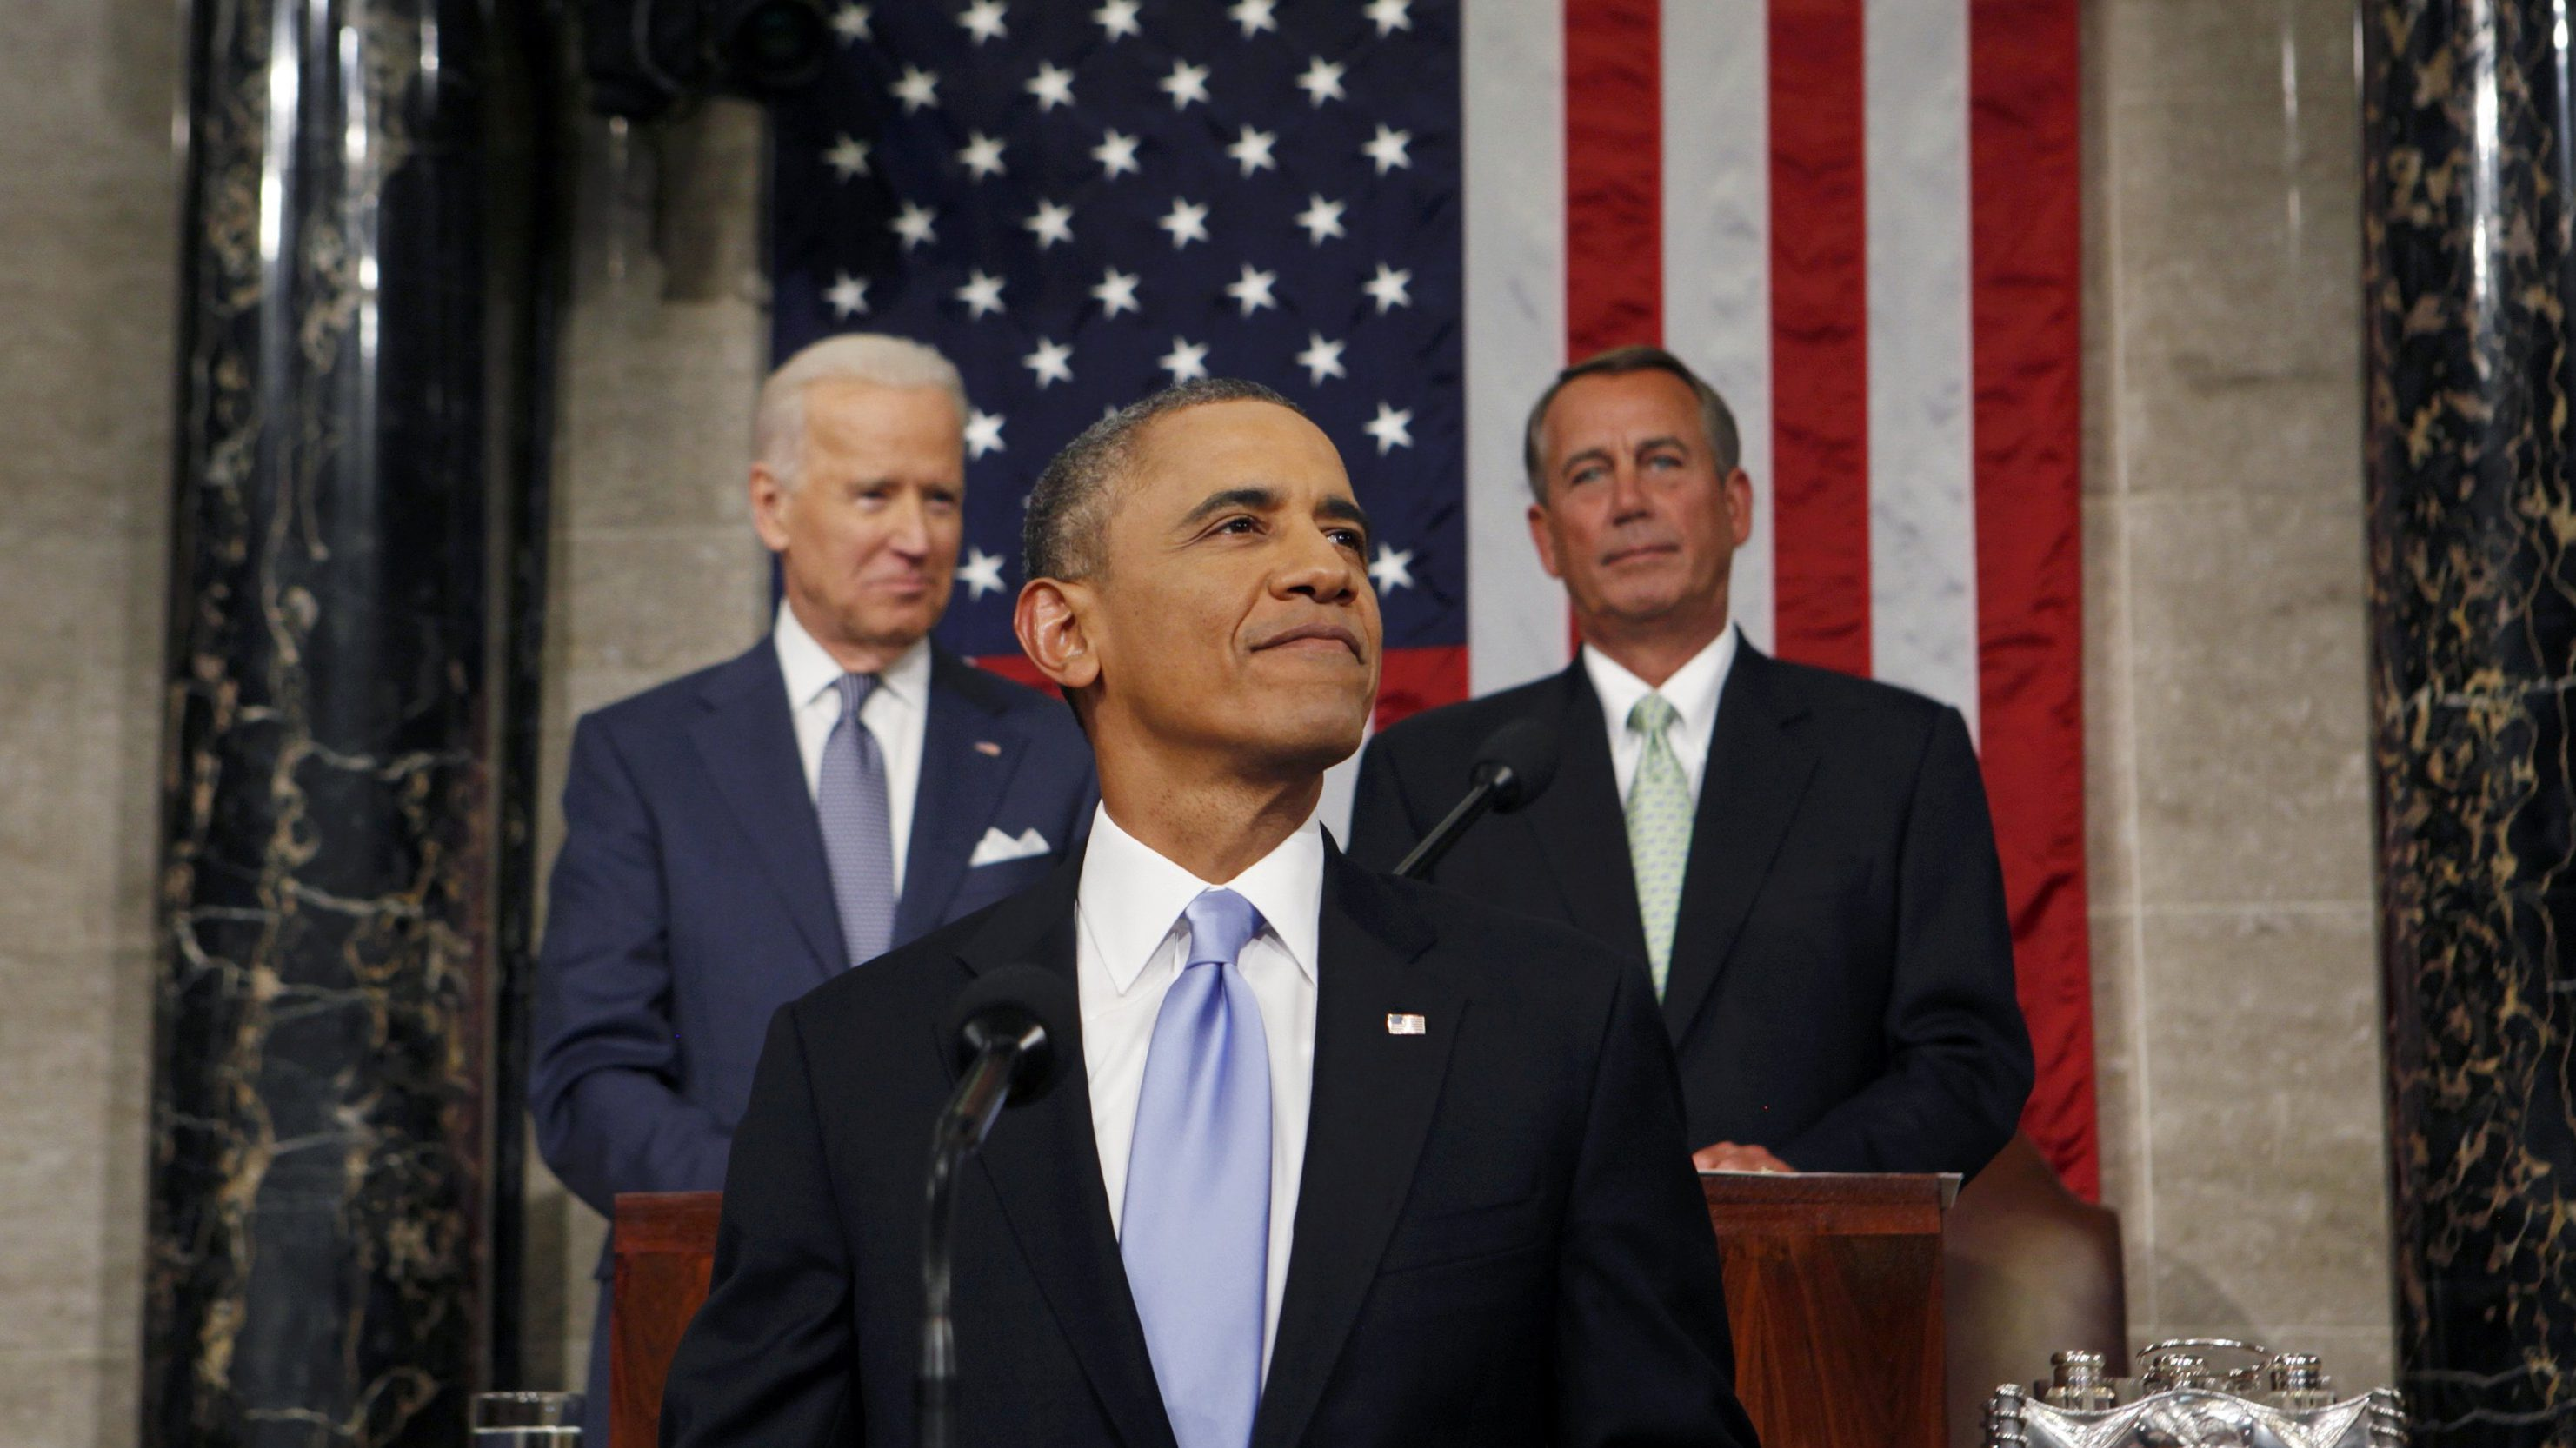 U.S. President Barack Obama smiles as he arrives to deliver his State of the Union speech on Capitol Hill in Washington January 28, 2014.   REUTERS/Larry Downing (UNITED STATES - Tags: POLITICS TPX IMAGES OF THE DAY) - GM1EA1T10IM01